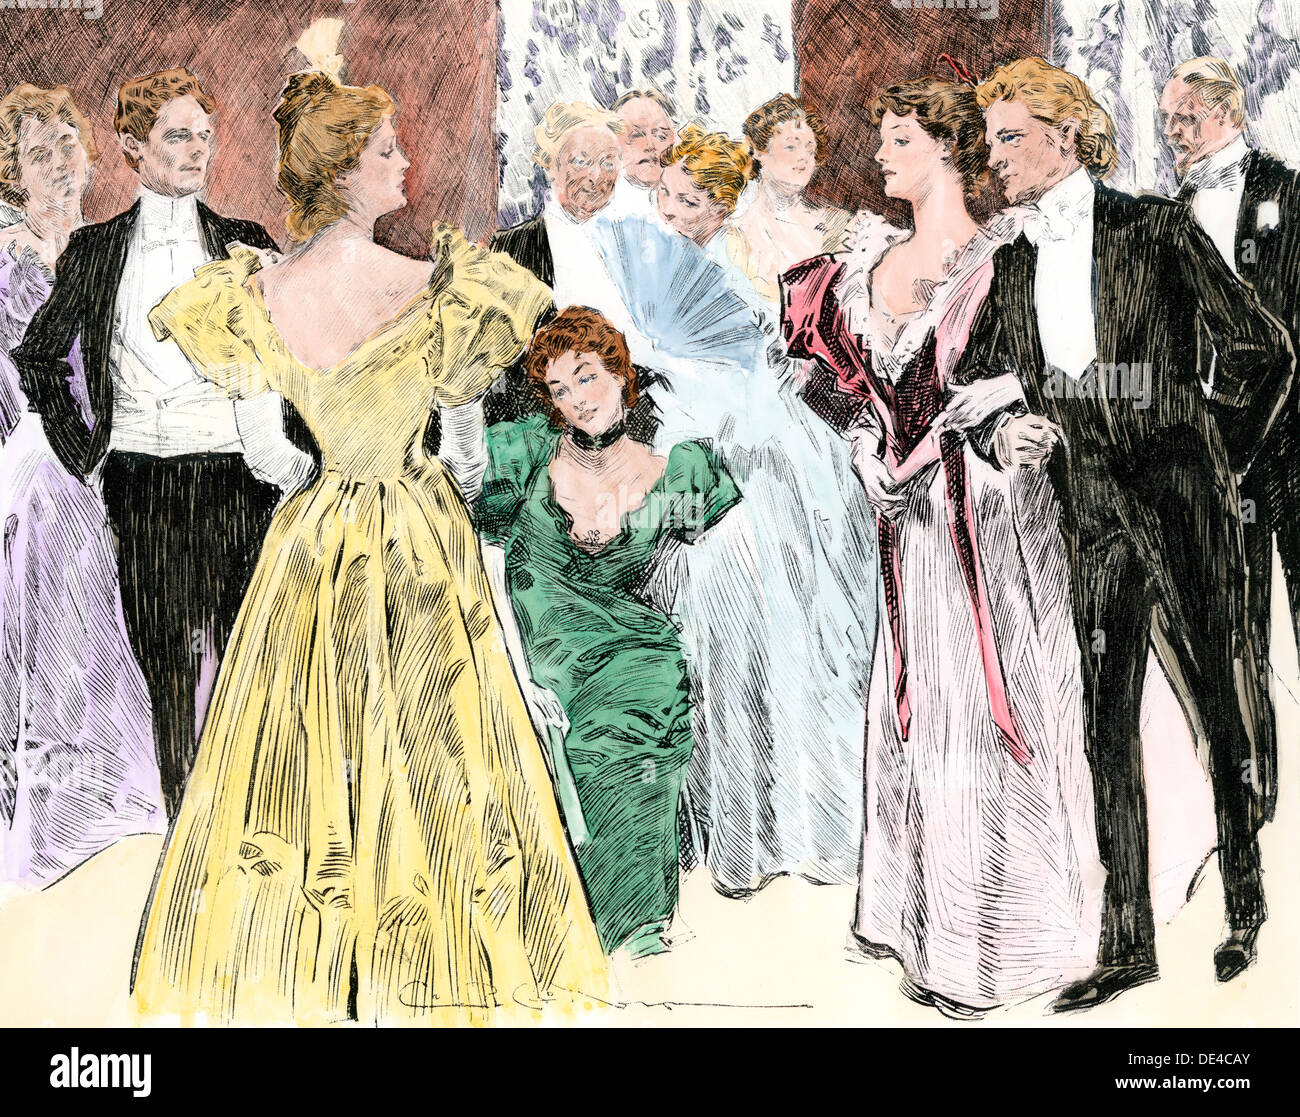 High-society evening reception, 1890s. Hand-colored woodcut of a Charles Dana Gibson illustration - Stock Image